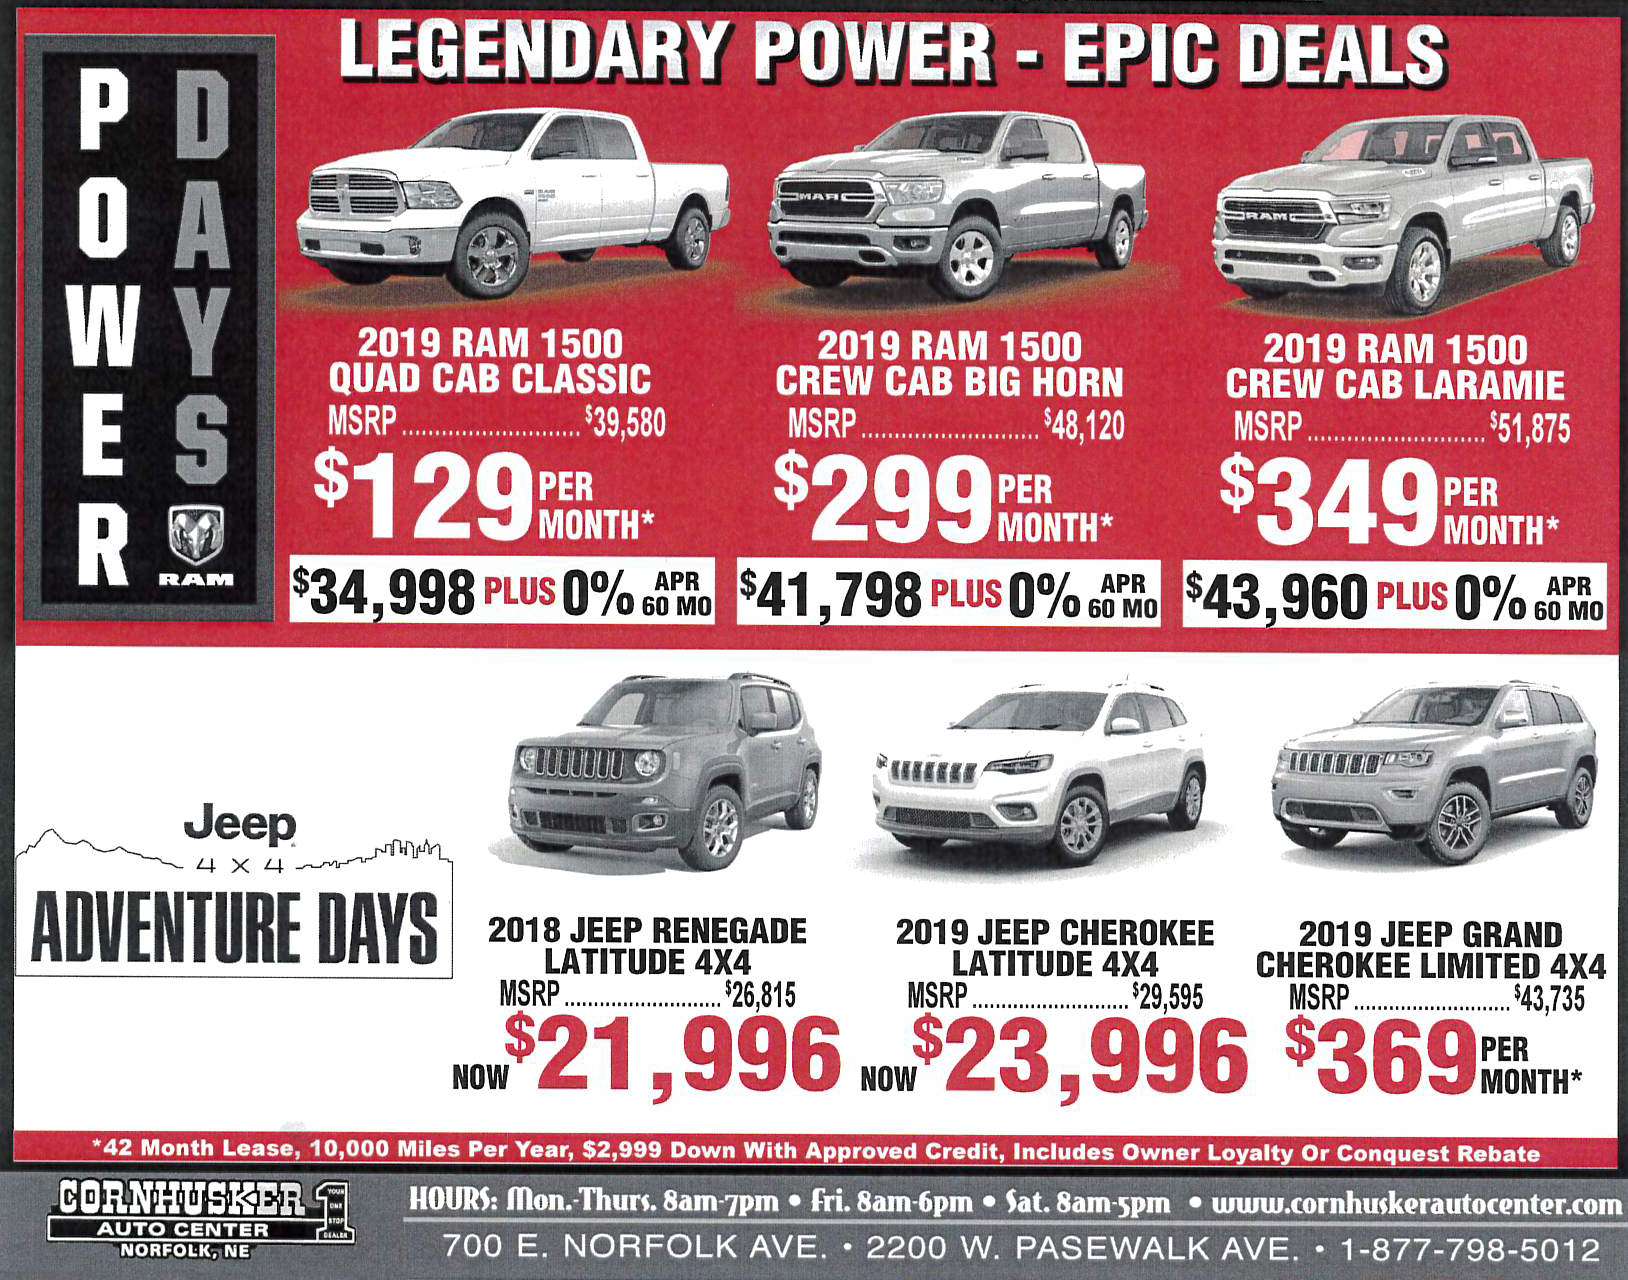 Deals on vehicles